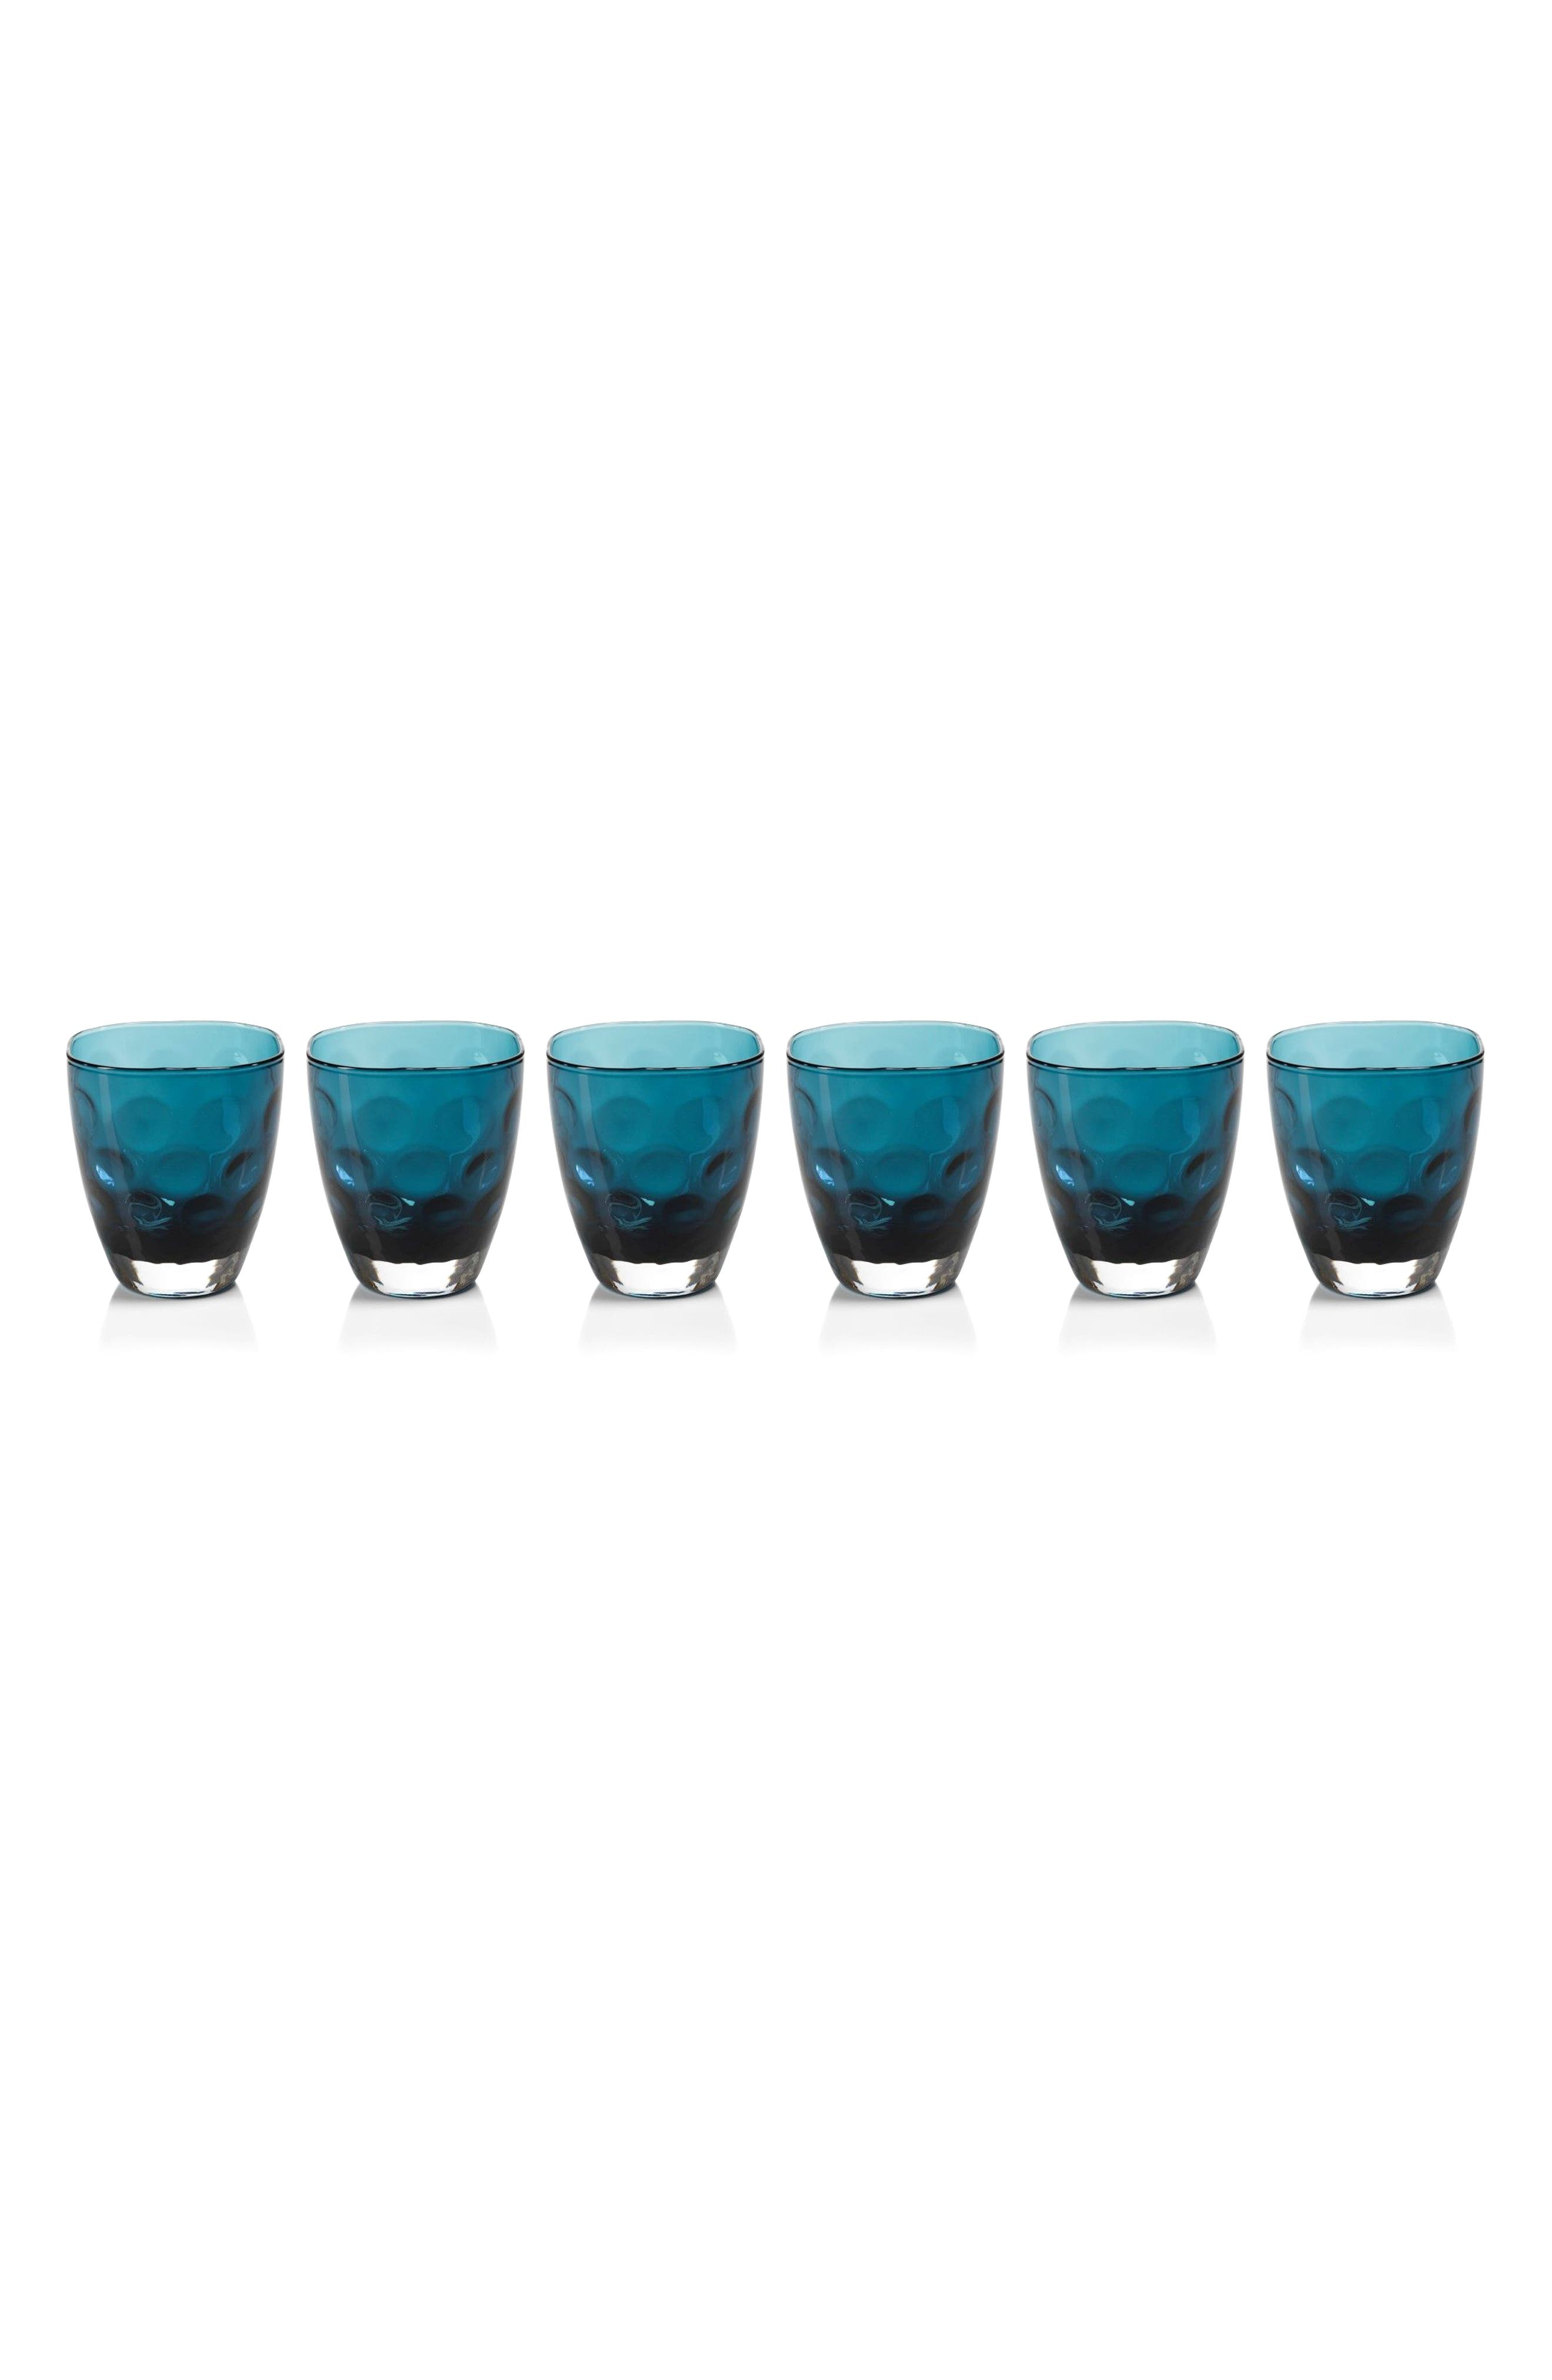 Alternate Image 1 Selected - Zodax Dimpled Set of 6 Double Old Fashioned Glasses